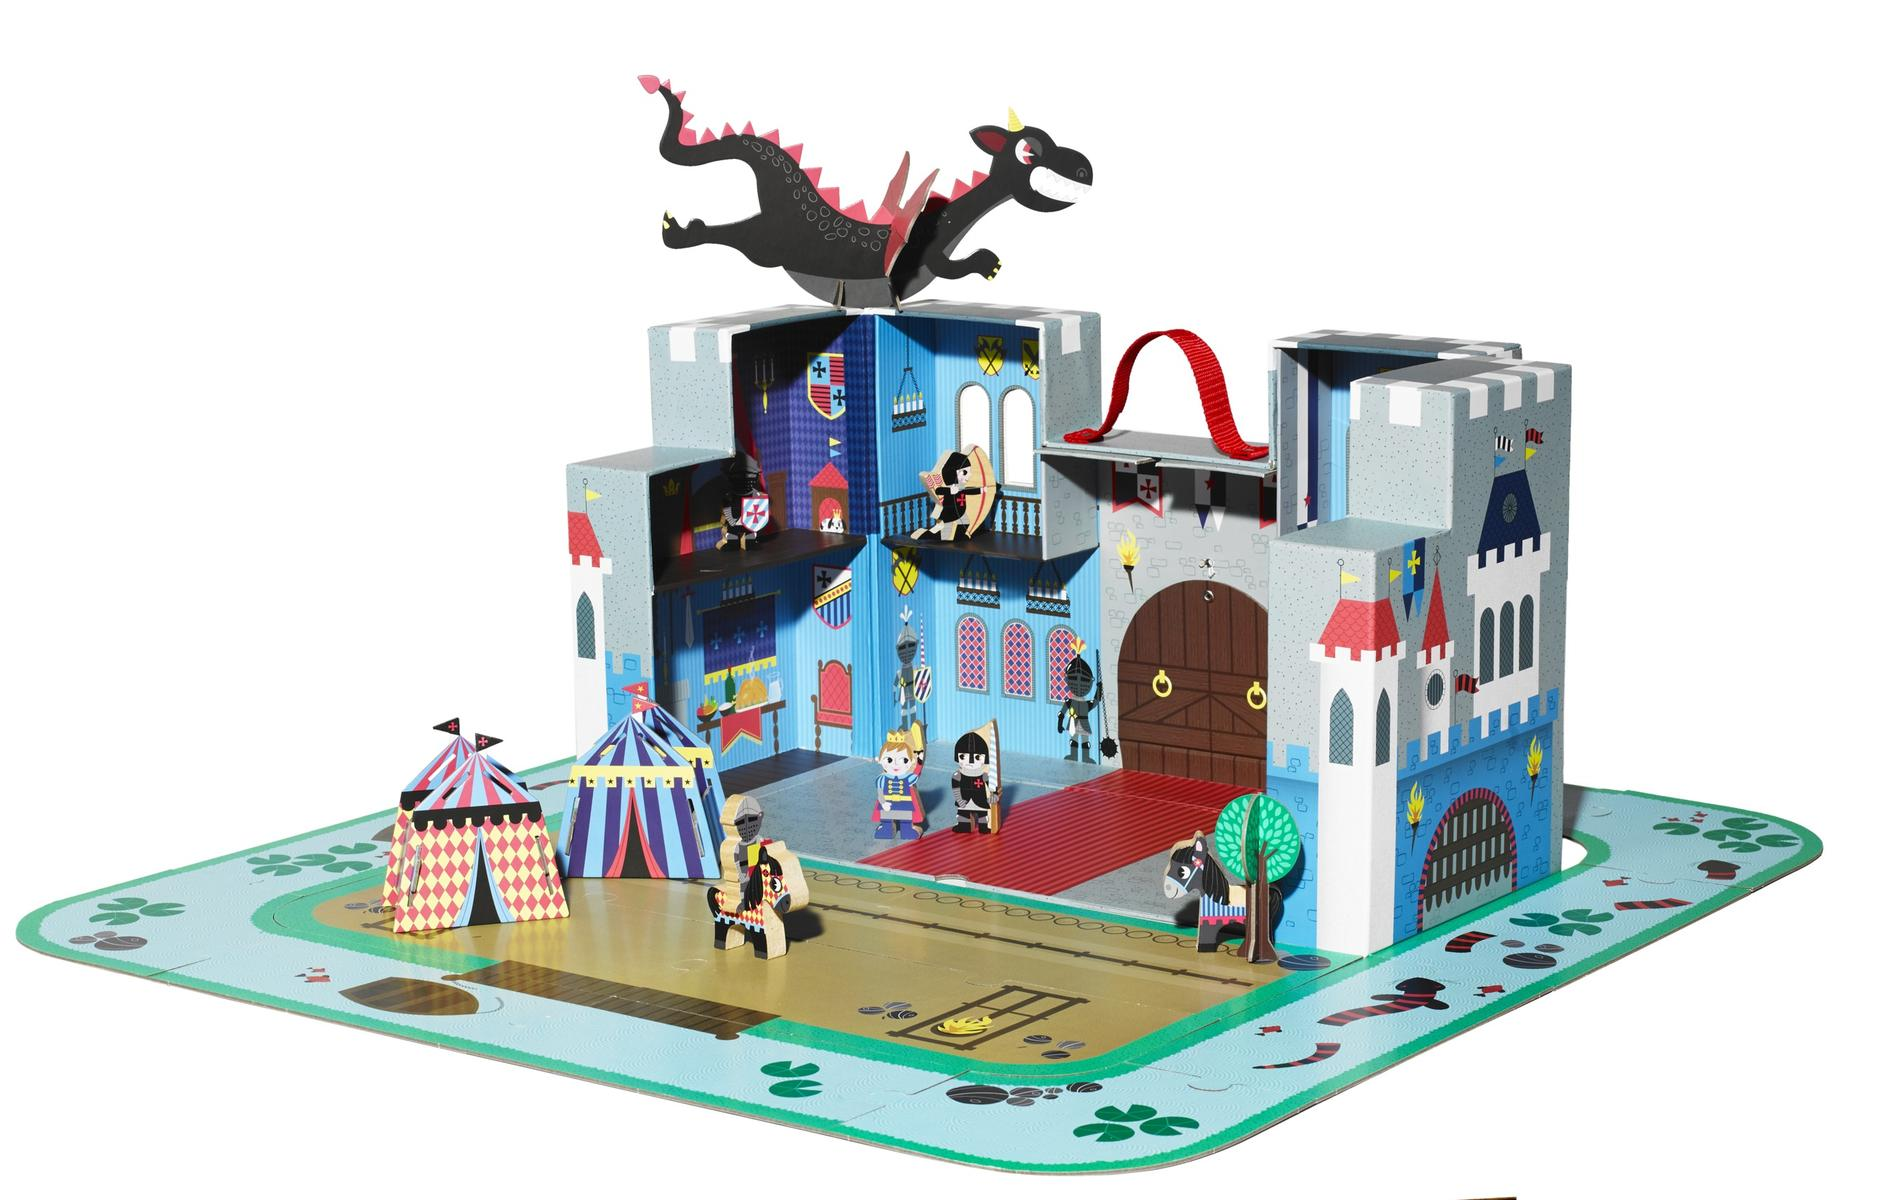 2016 Toys of the Year Janod Fantastic Castle Puzzle Playset